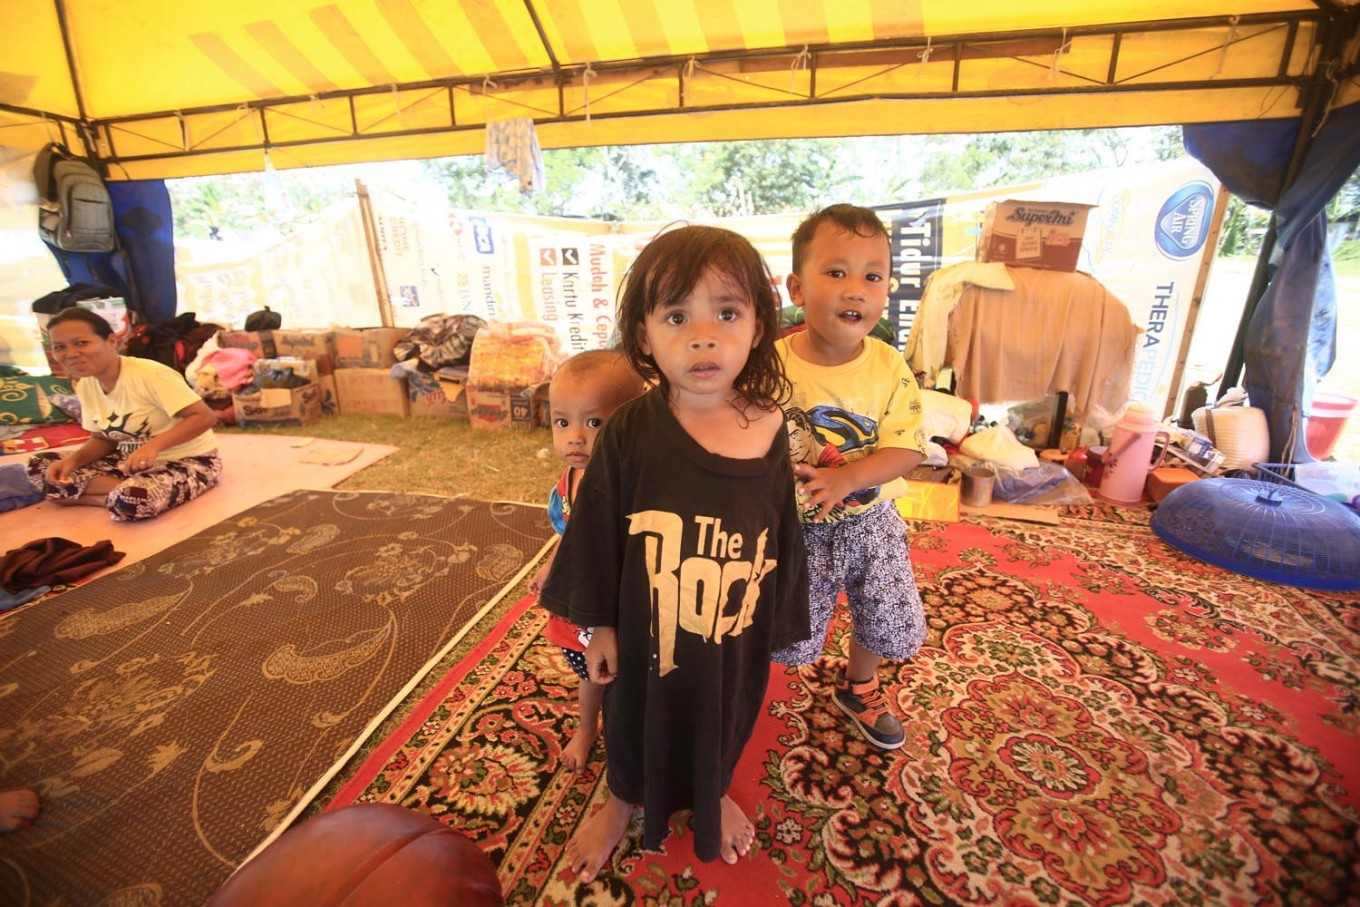 Children play in a shelter in front of the Darussalam Grand Mosque on Friday, October 5, 2018. According to the BNPB, a total of 70,821 evacuees are staying in 141 shelters. JP/Dhoni Setiawan